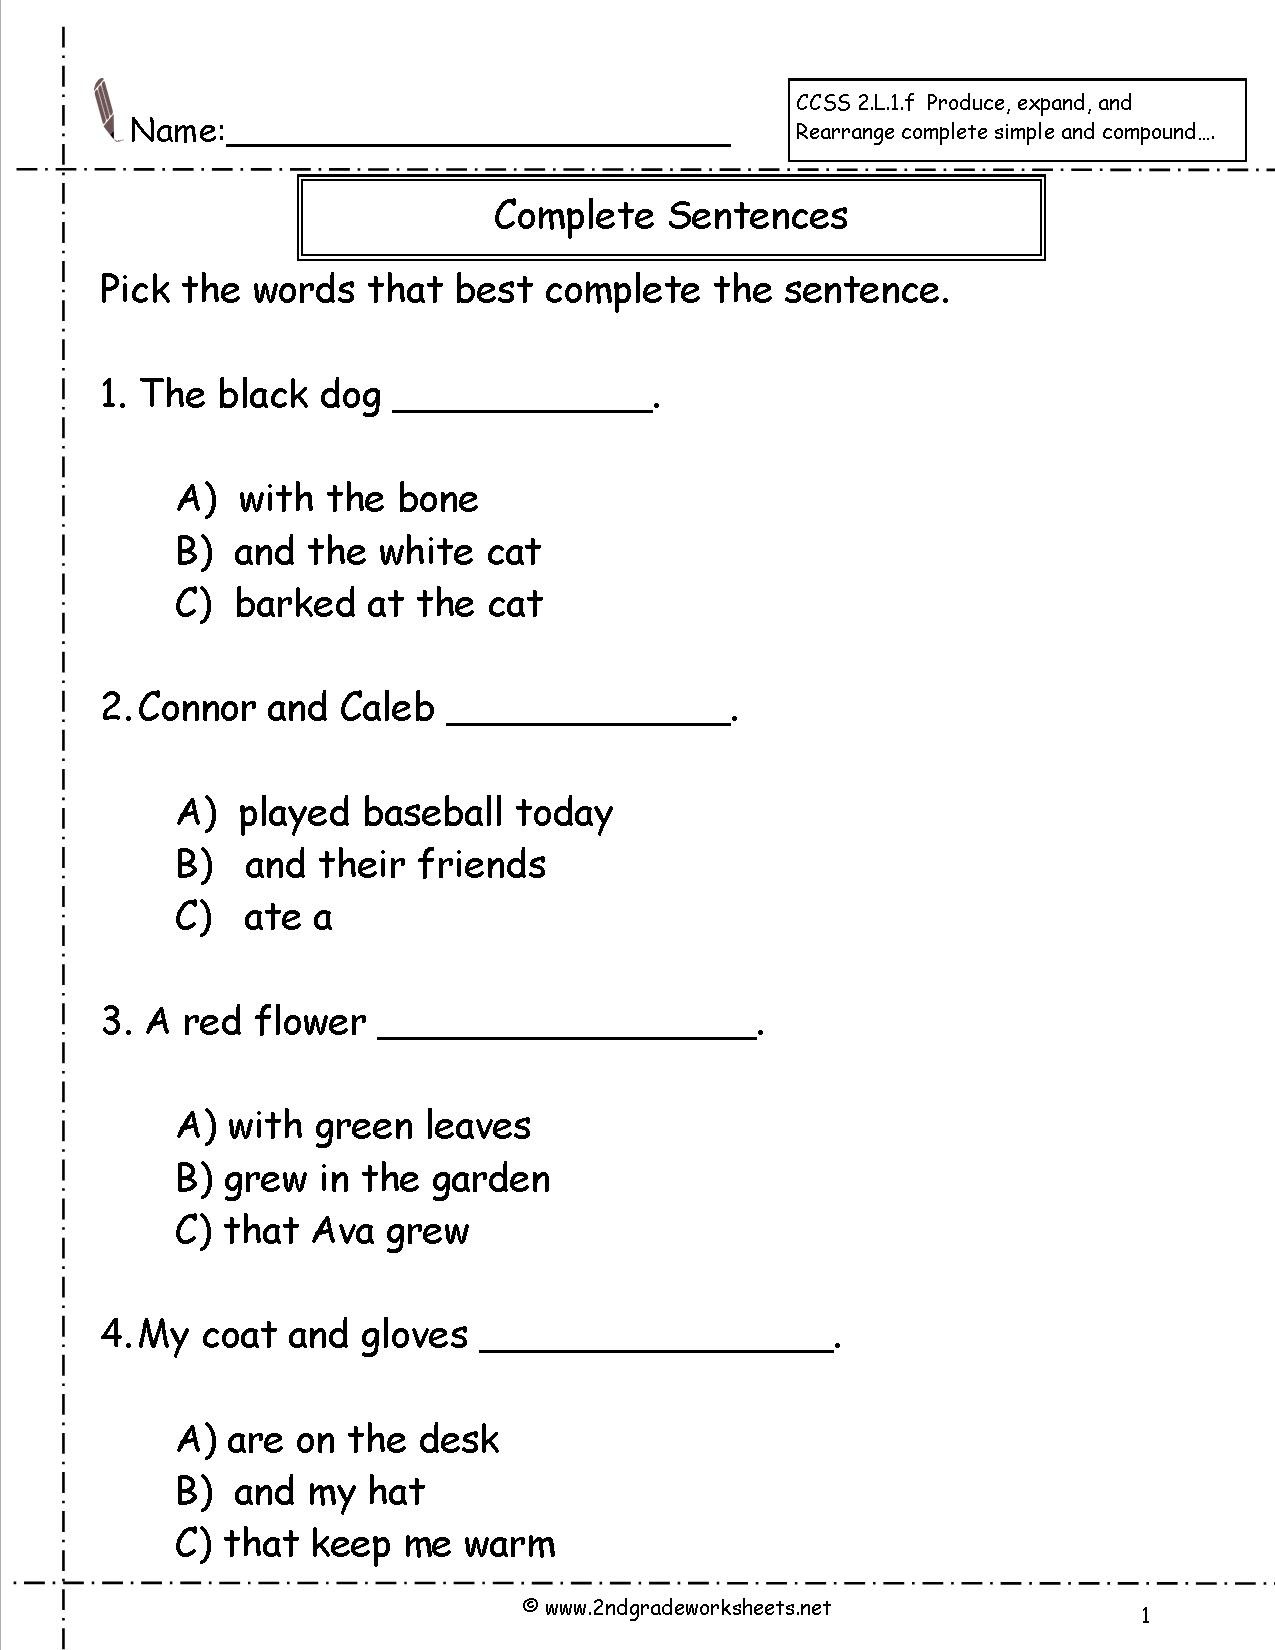 Complete Sentences Worksheets 4th Grade Second Grade Sentences Worksheets Ccss 2 L 1 F Worksheets